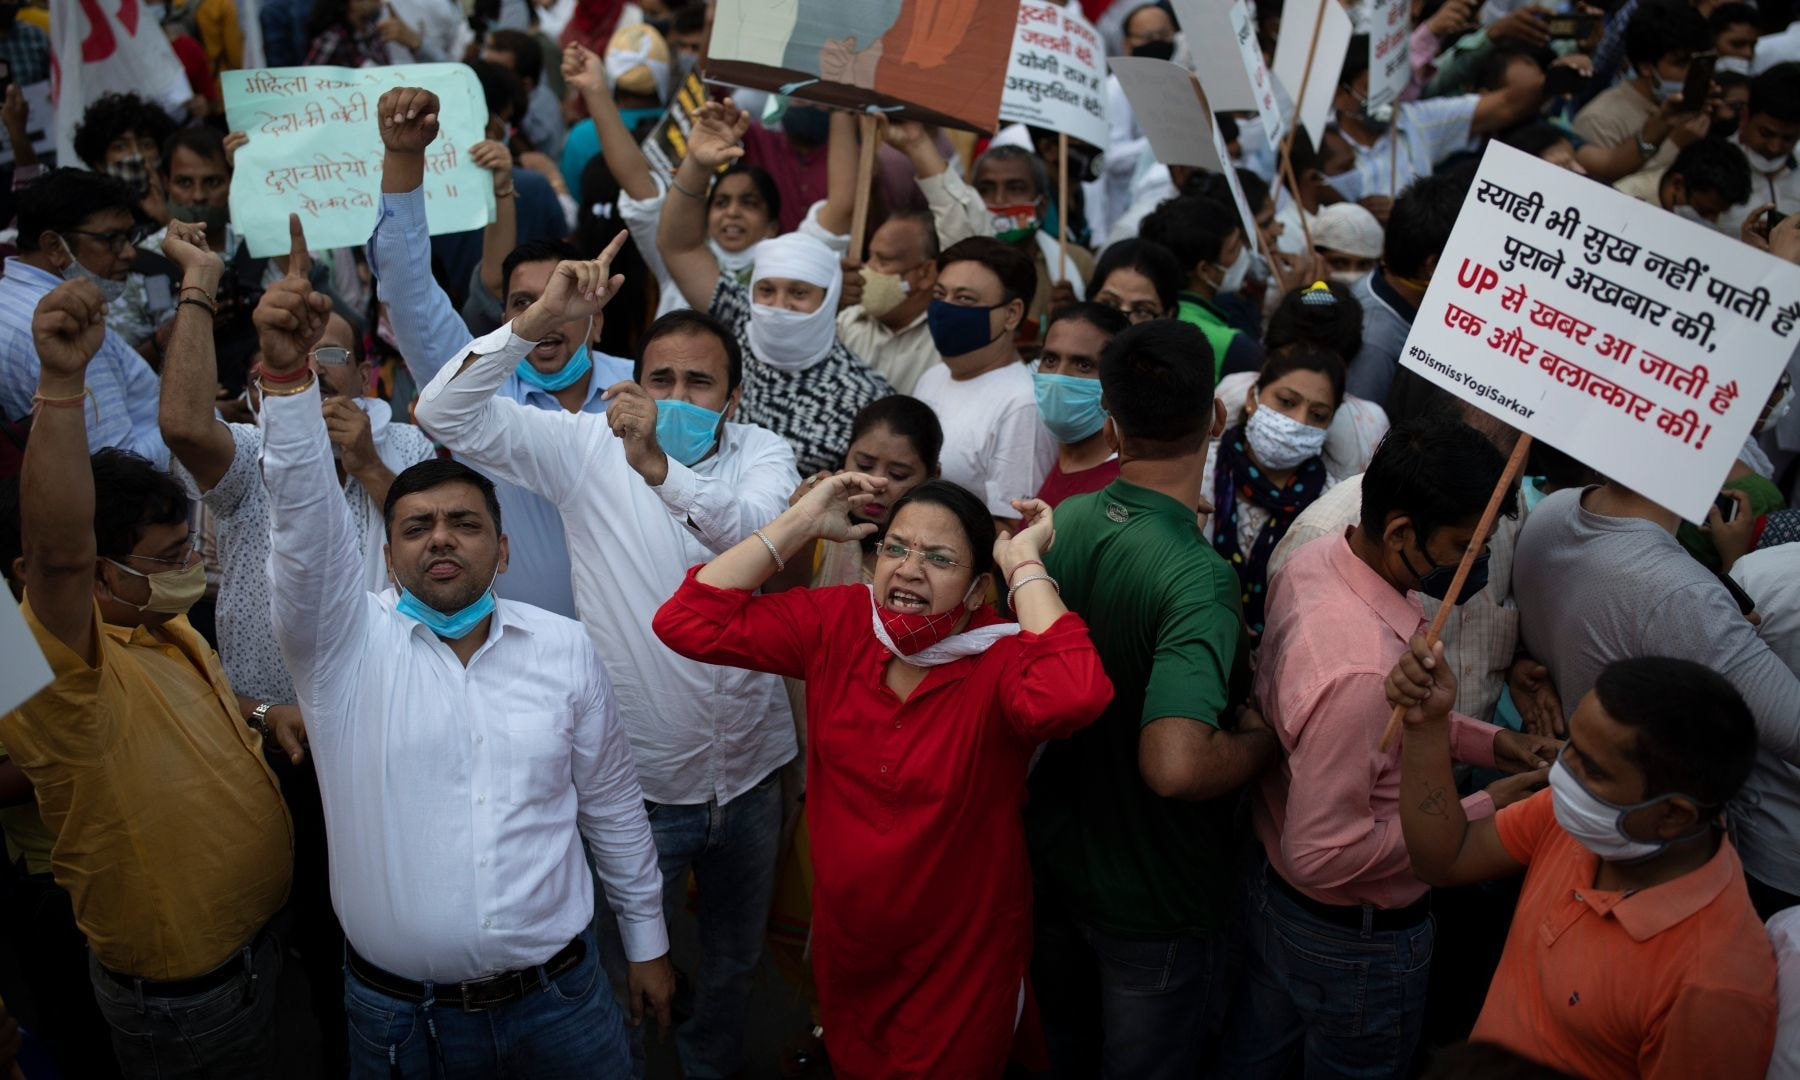 Protestors shout slogans against the gang rape and killing of a woman in India's northern state of Uttar Pradesh, in New Delhi, India, Friday. — AP